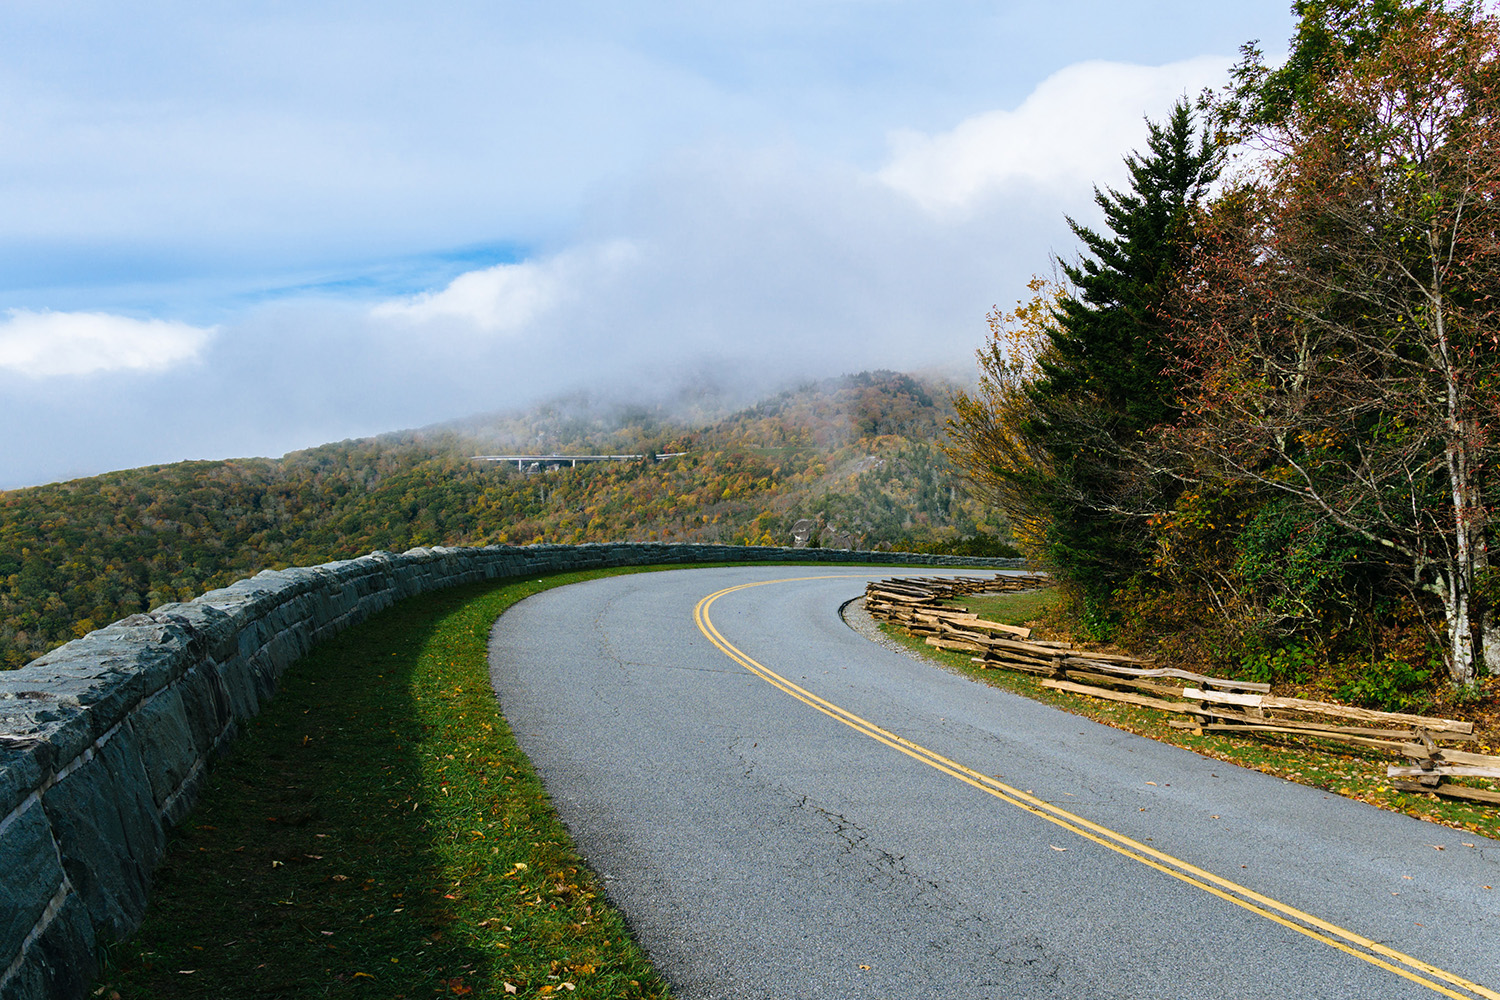 a road in the mountains